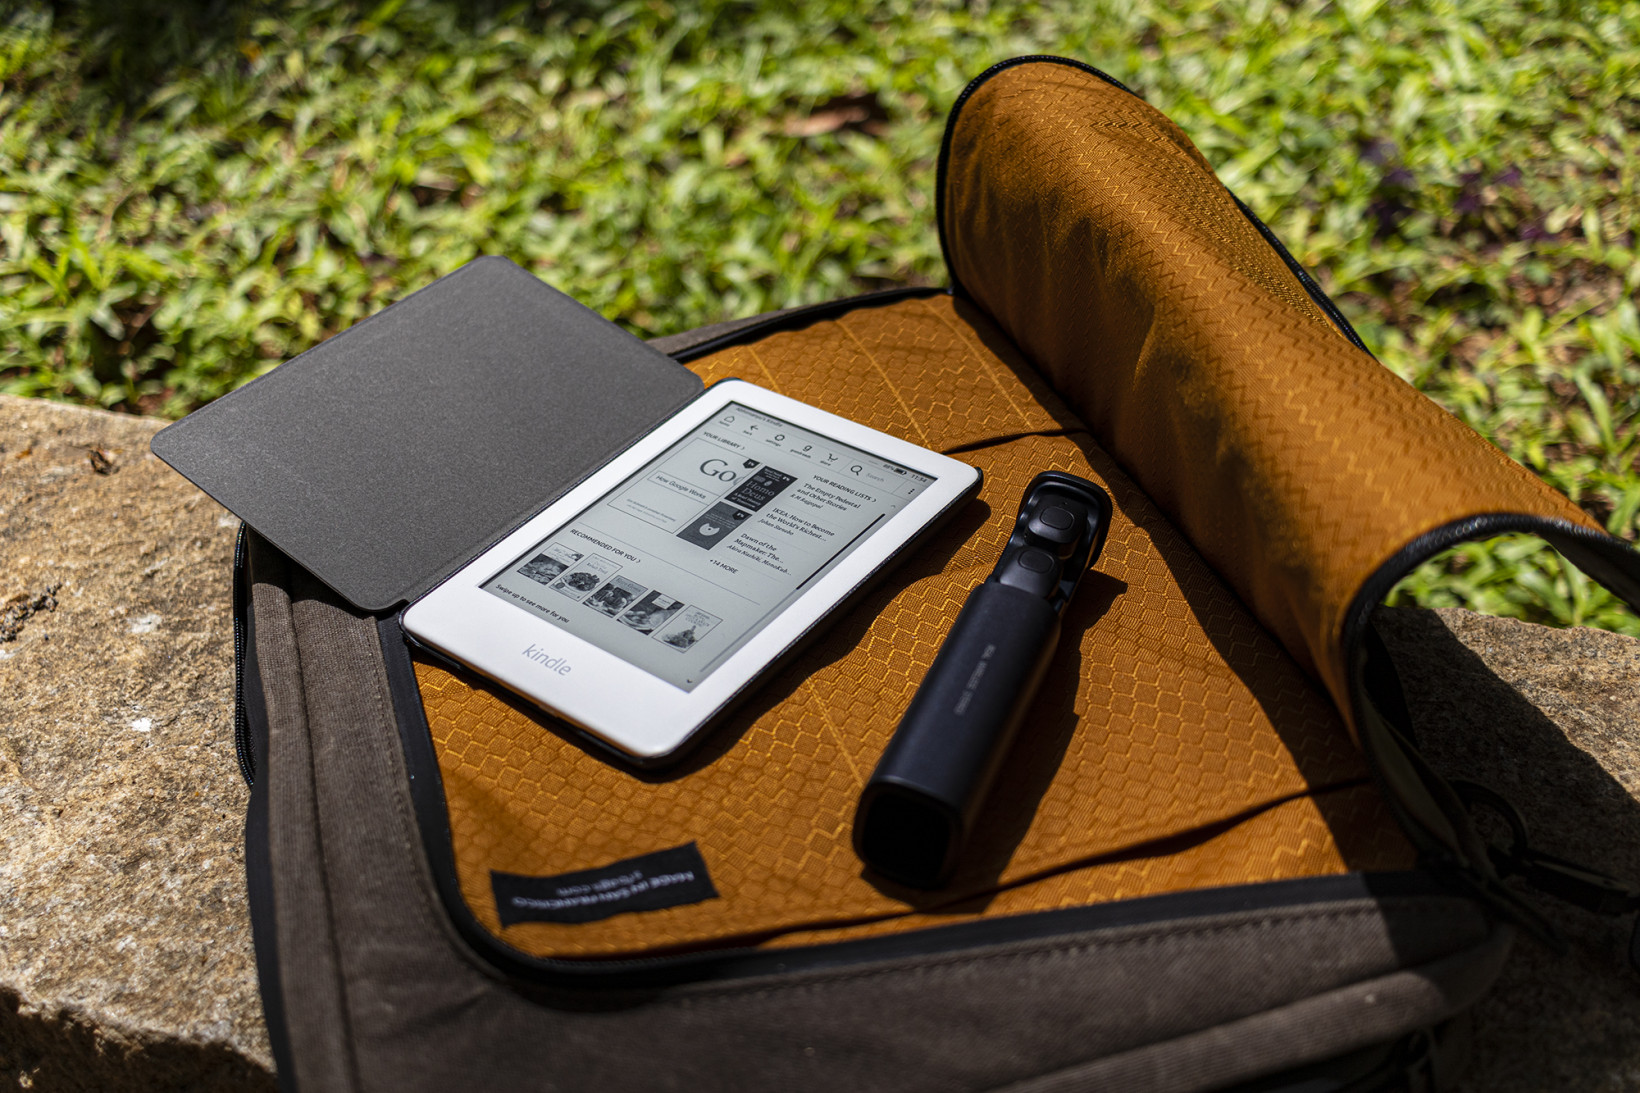 The Tech Folio's front compartment can store small gadgets like earbuds and a Kindle, or even your laptop's charging brick